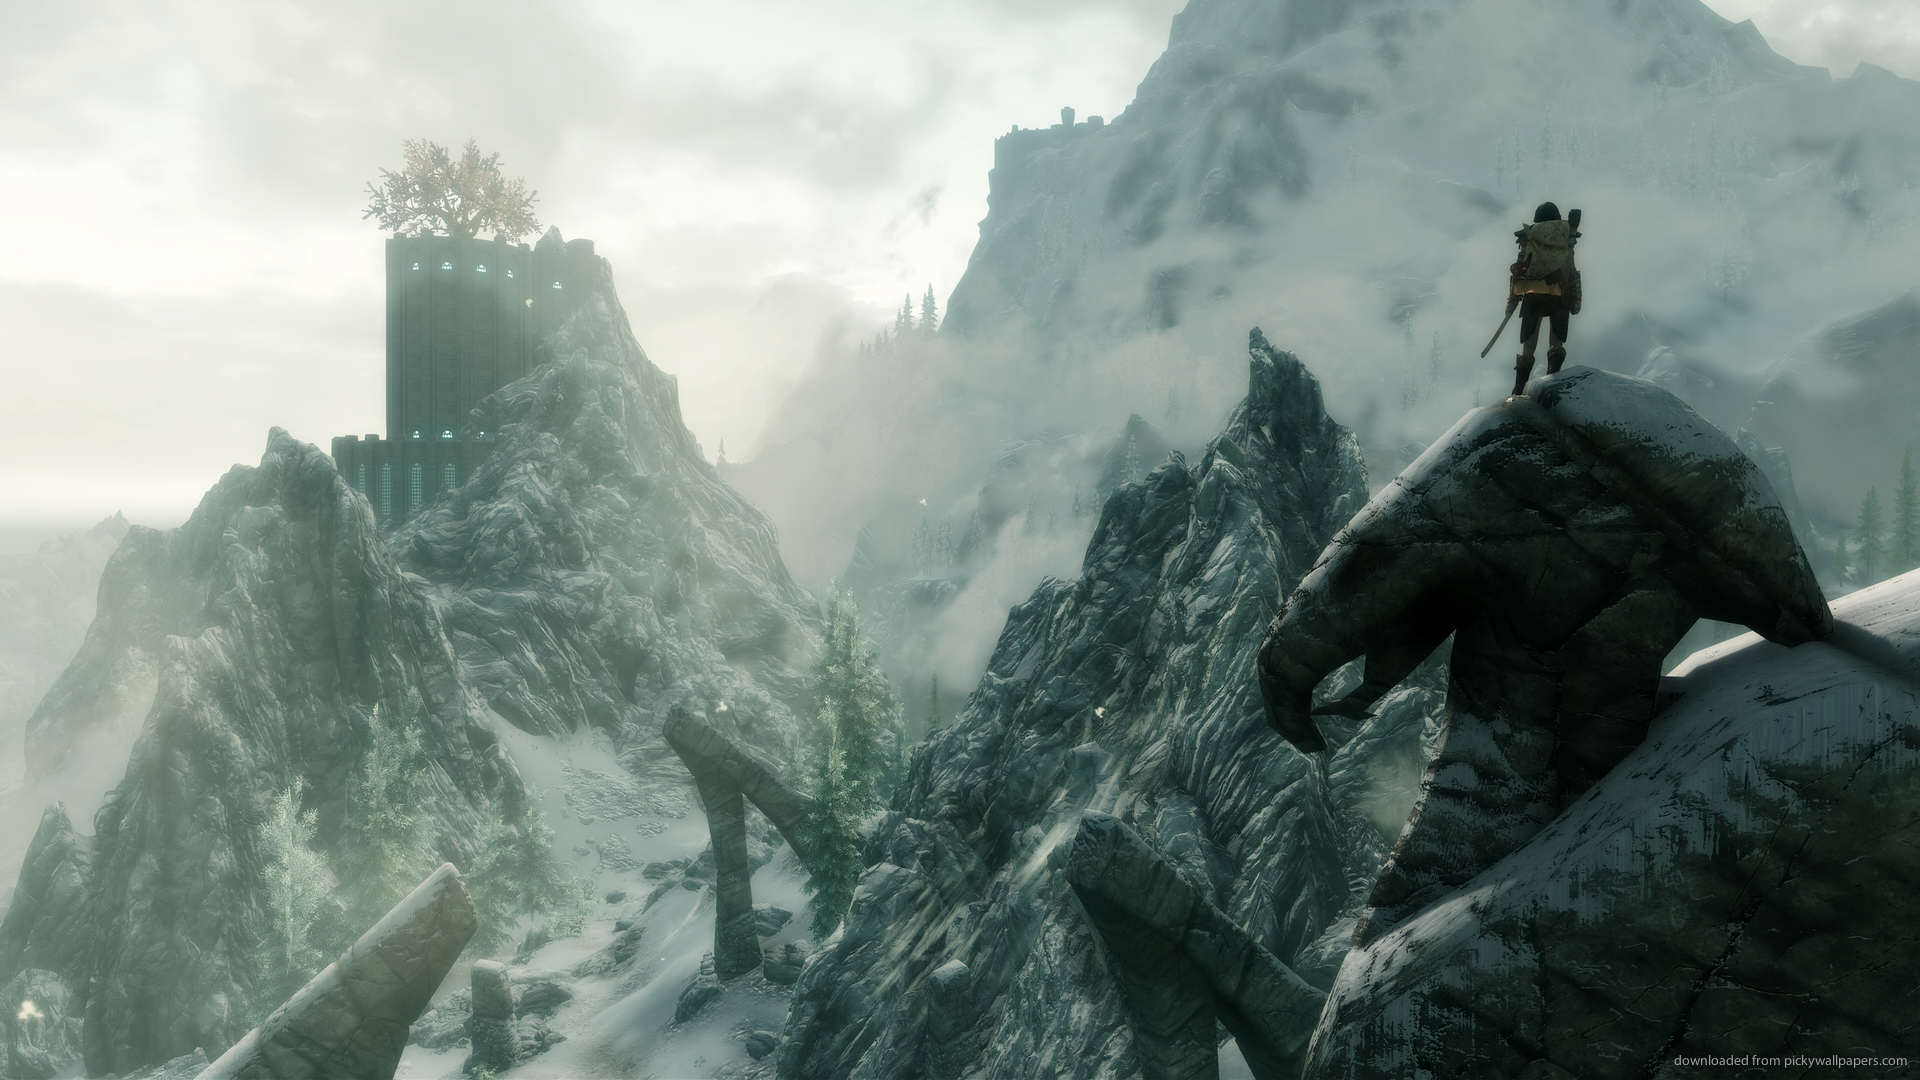 Rumours Suggest More Bethesda Titles Heading For E3 skyrim1